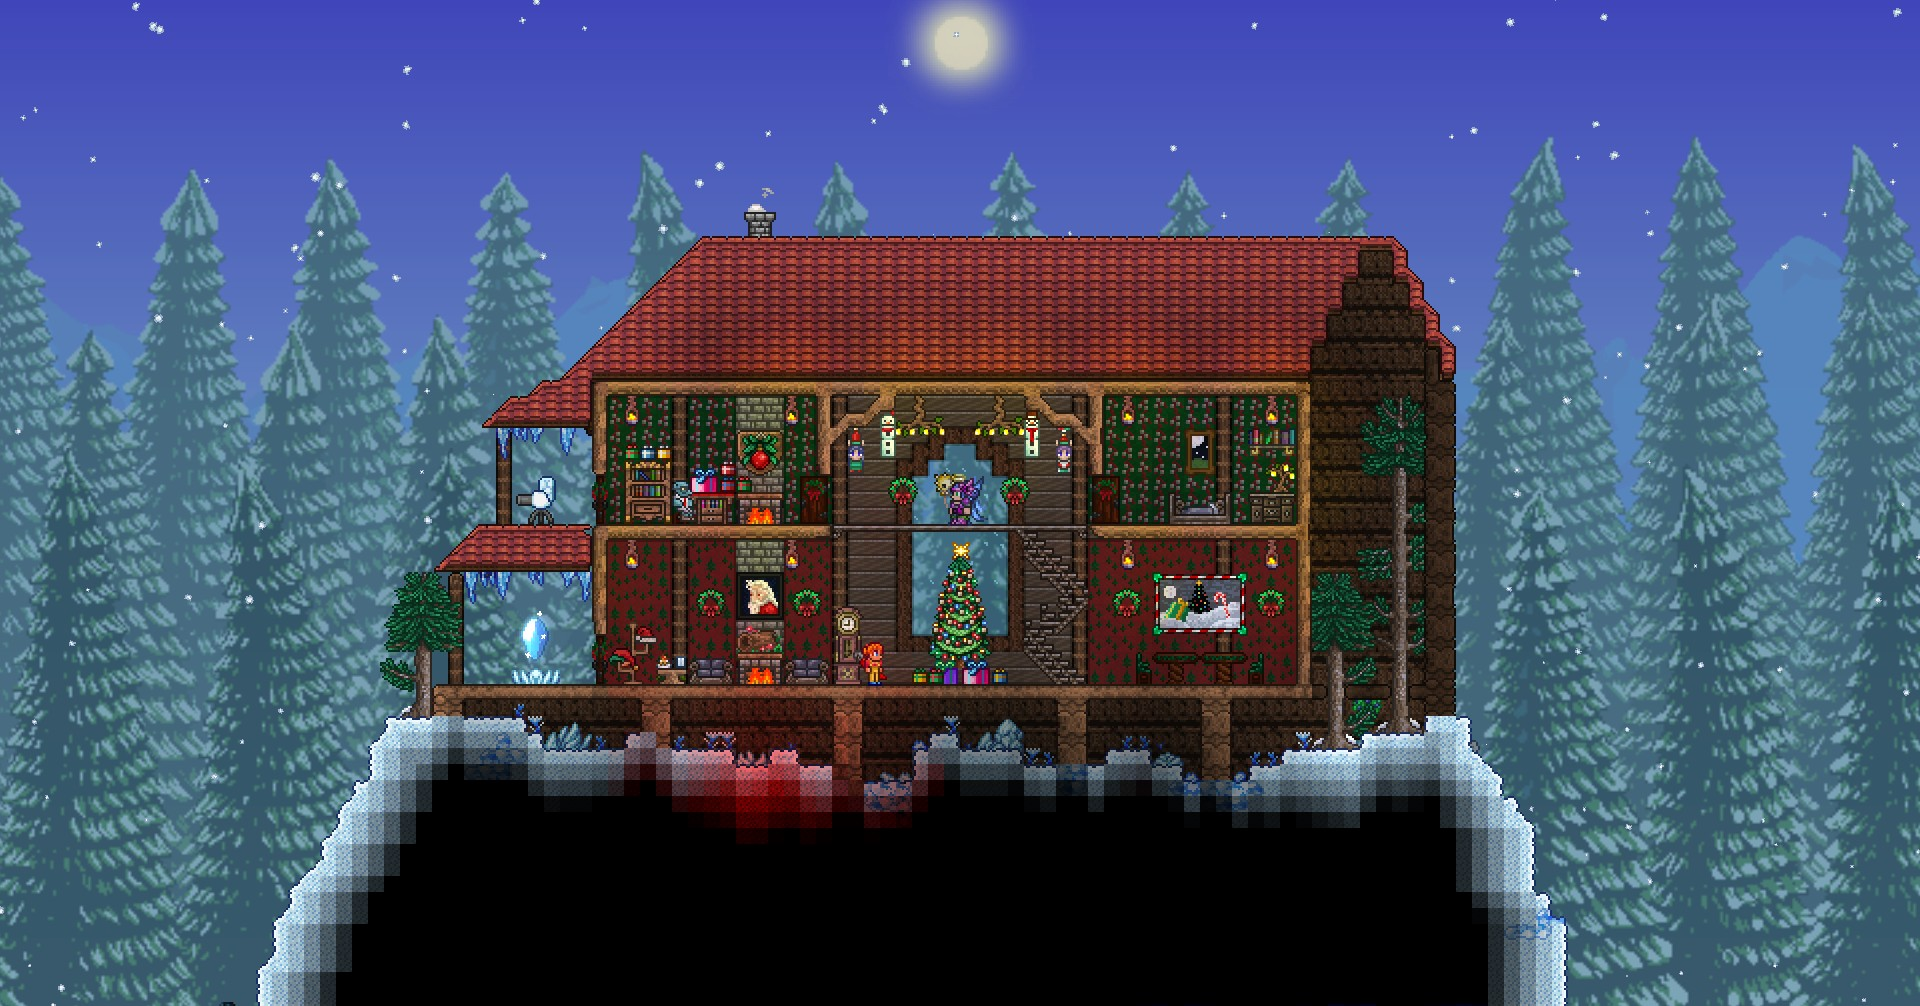 festive holiday cabin NPC house for The Goblin Tinkerer and The Mechanic